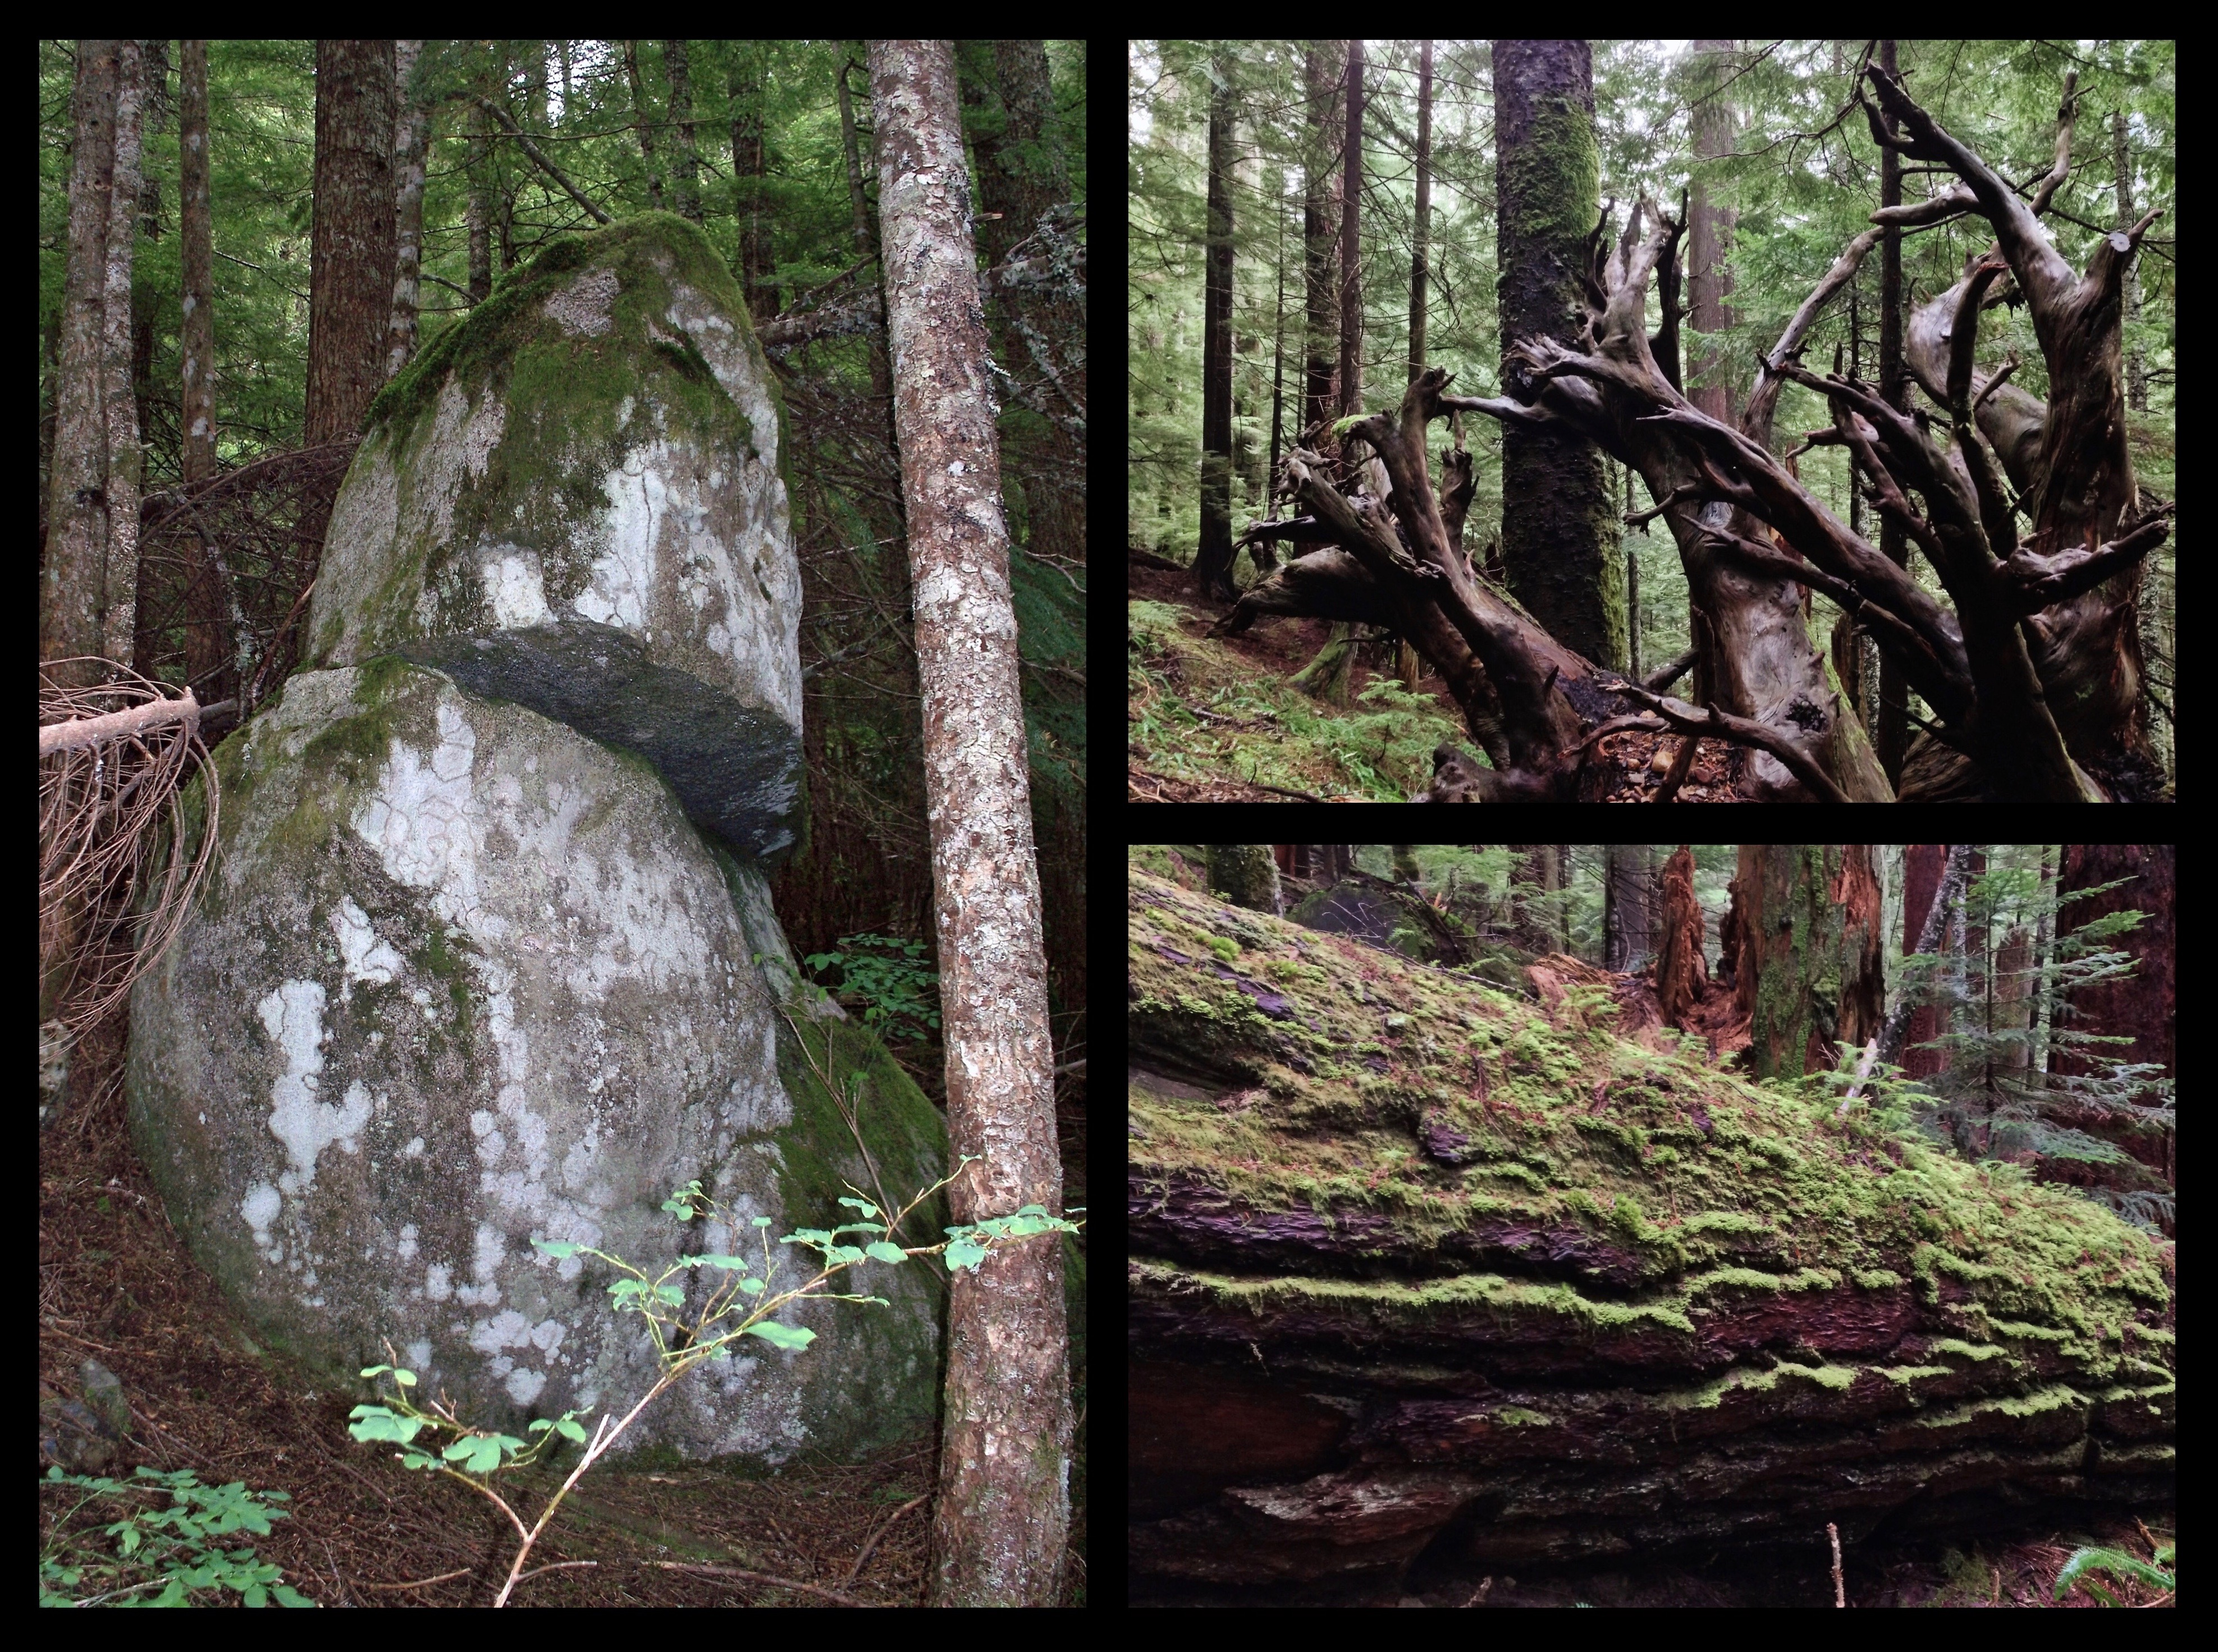 Along the trail, keep watch for curious bits of natural woodland sculpture, including a fractured, yet untoppled boulder amid the forest columns (left), the roots of a fallen tree reaching like so many disembodied arms (upper right), and the sinuous, moss-lined grooves of another nurse log reclining in the wayside (lower right). Annette Lake Trail, July 04, 2010 and December 29, 2013.